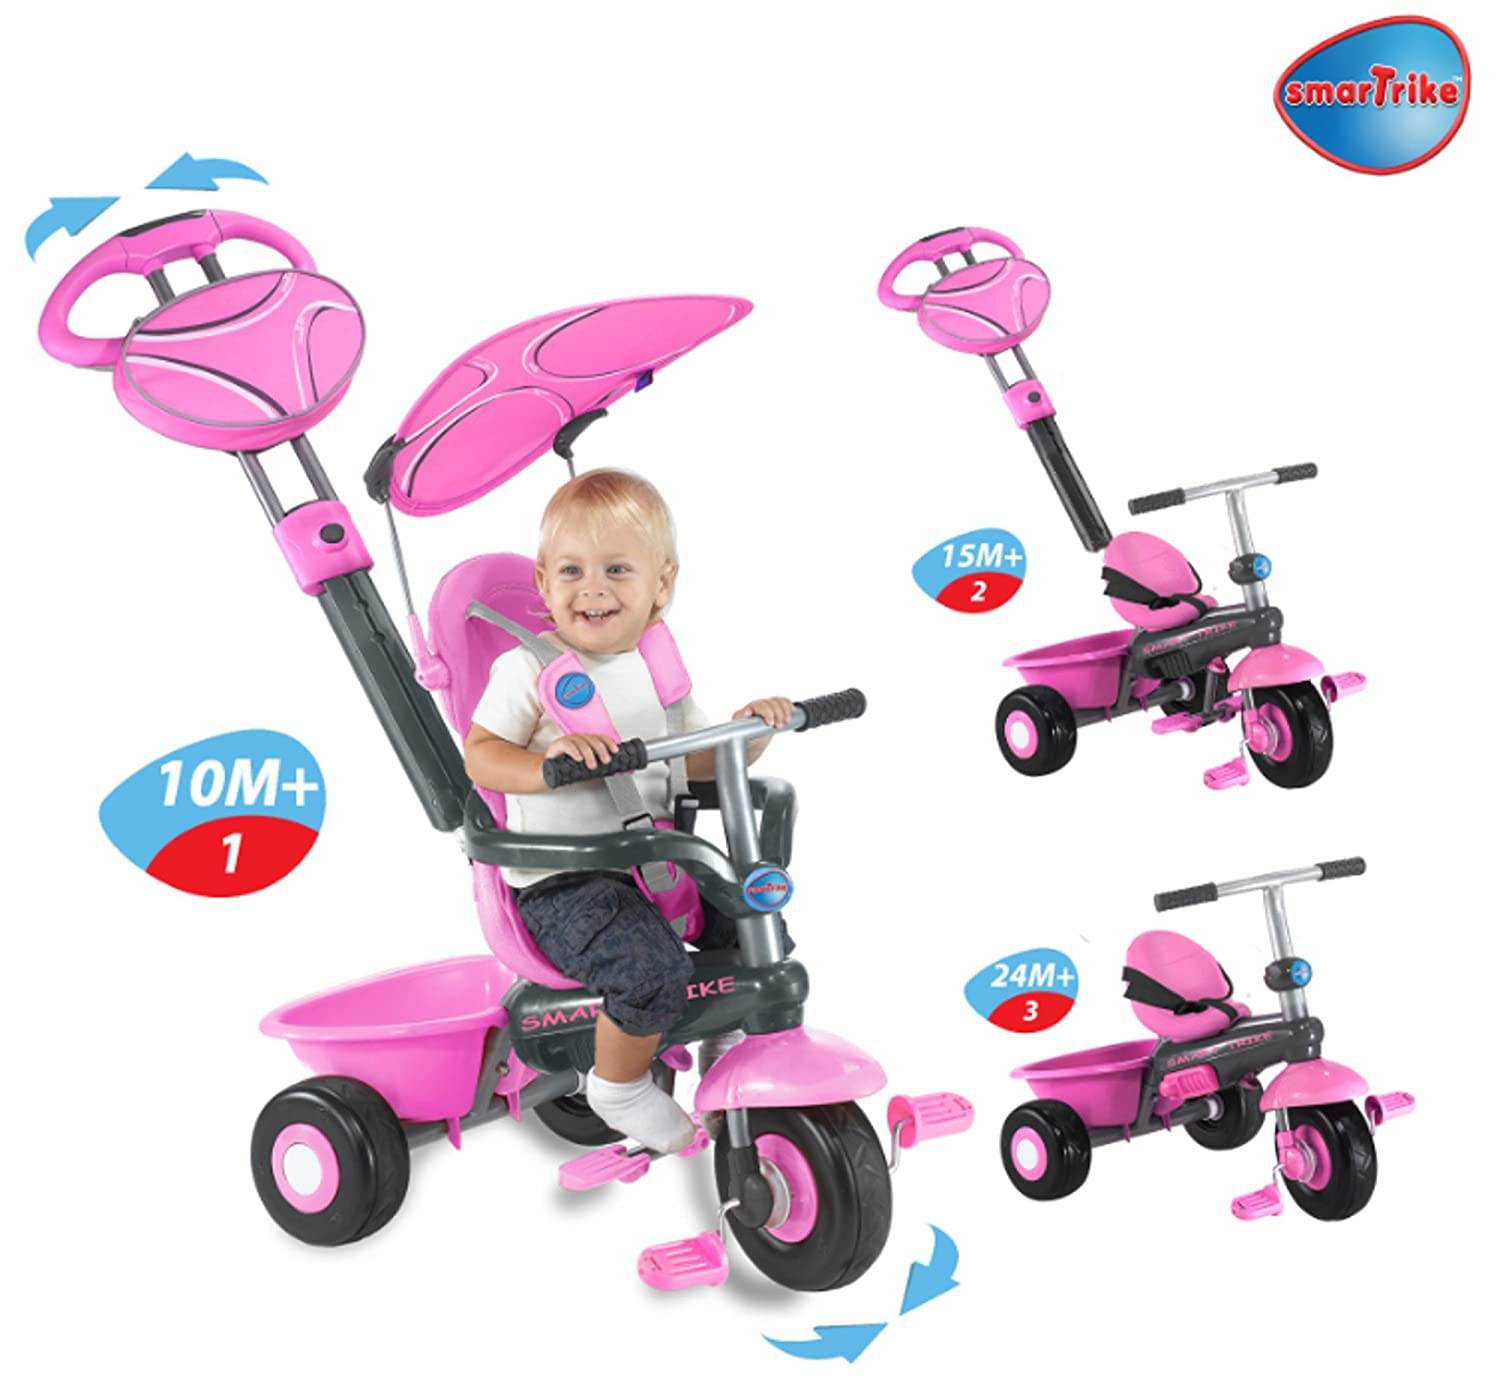 Amazon.com Smart Trike Sport 3-In-1 Kids Tricycle Color Pink Toys u0026 Games  sc 1 st  Amazon.com & Amazon.com: Smart Trike Sport 3-In-1 Kids Tricycle Color: Pink ...